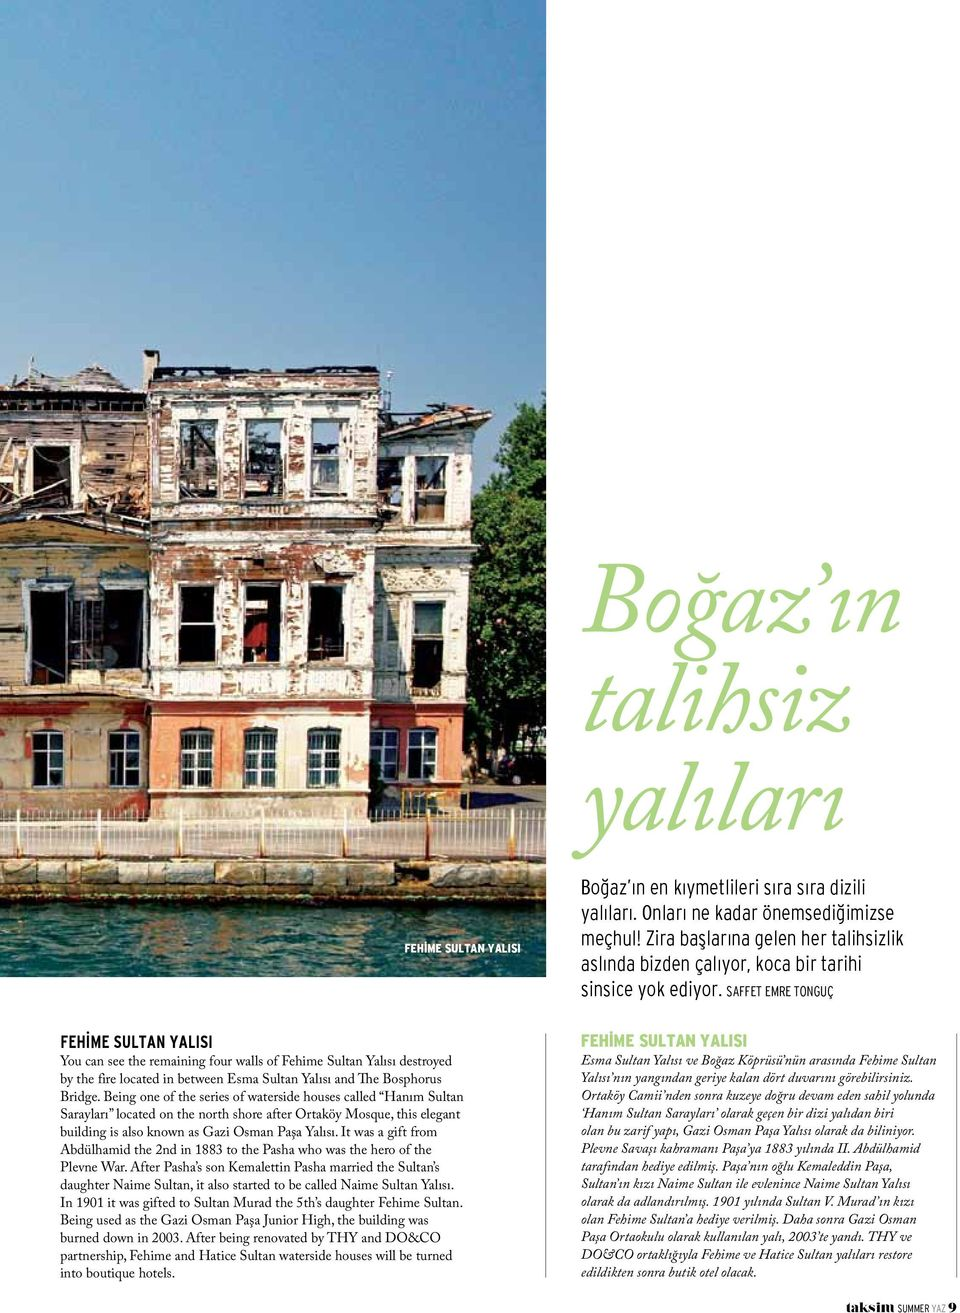 Being one of the series of waterside houses called Hanım Sultan Sarayları located on the north shore after Ortaköy Mosque, this elegant building is also known as Gazi Osman Paşa Yalısı.